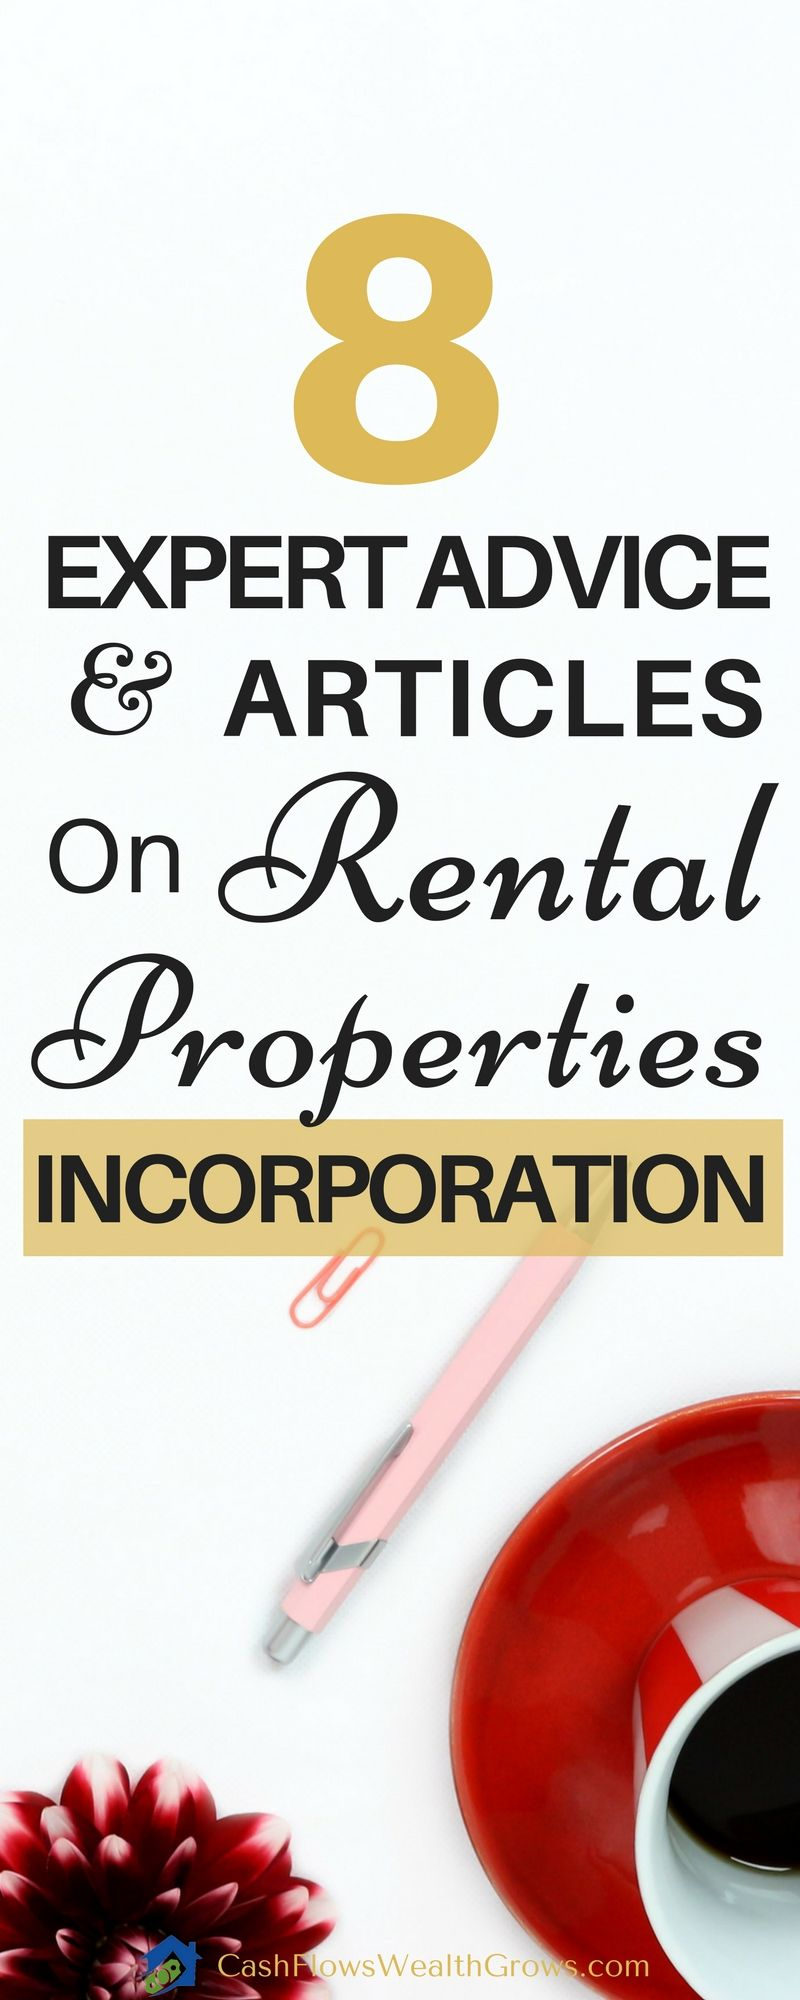 8 Expert Advice Articles On Rental Properties Incorporation